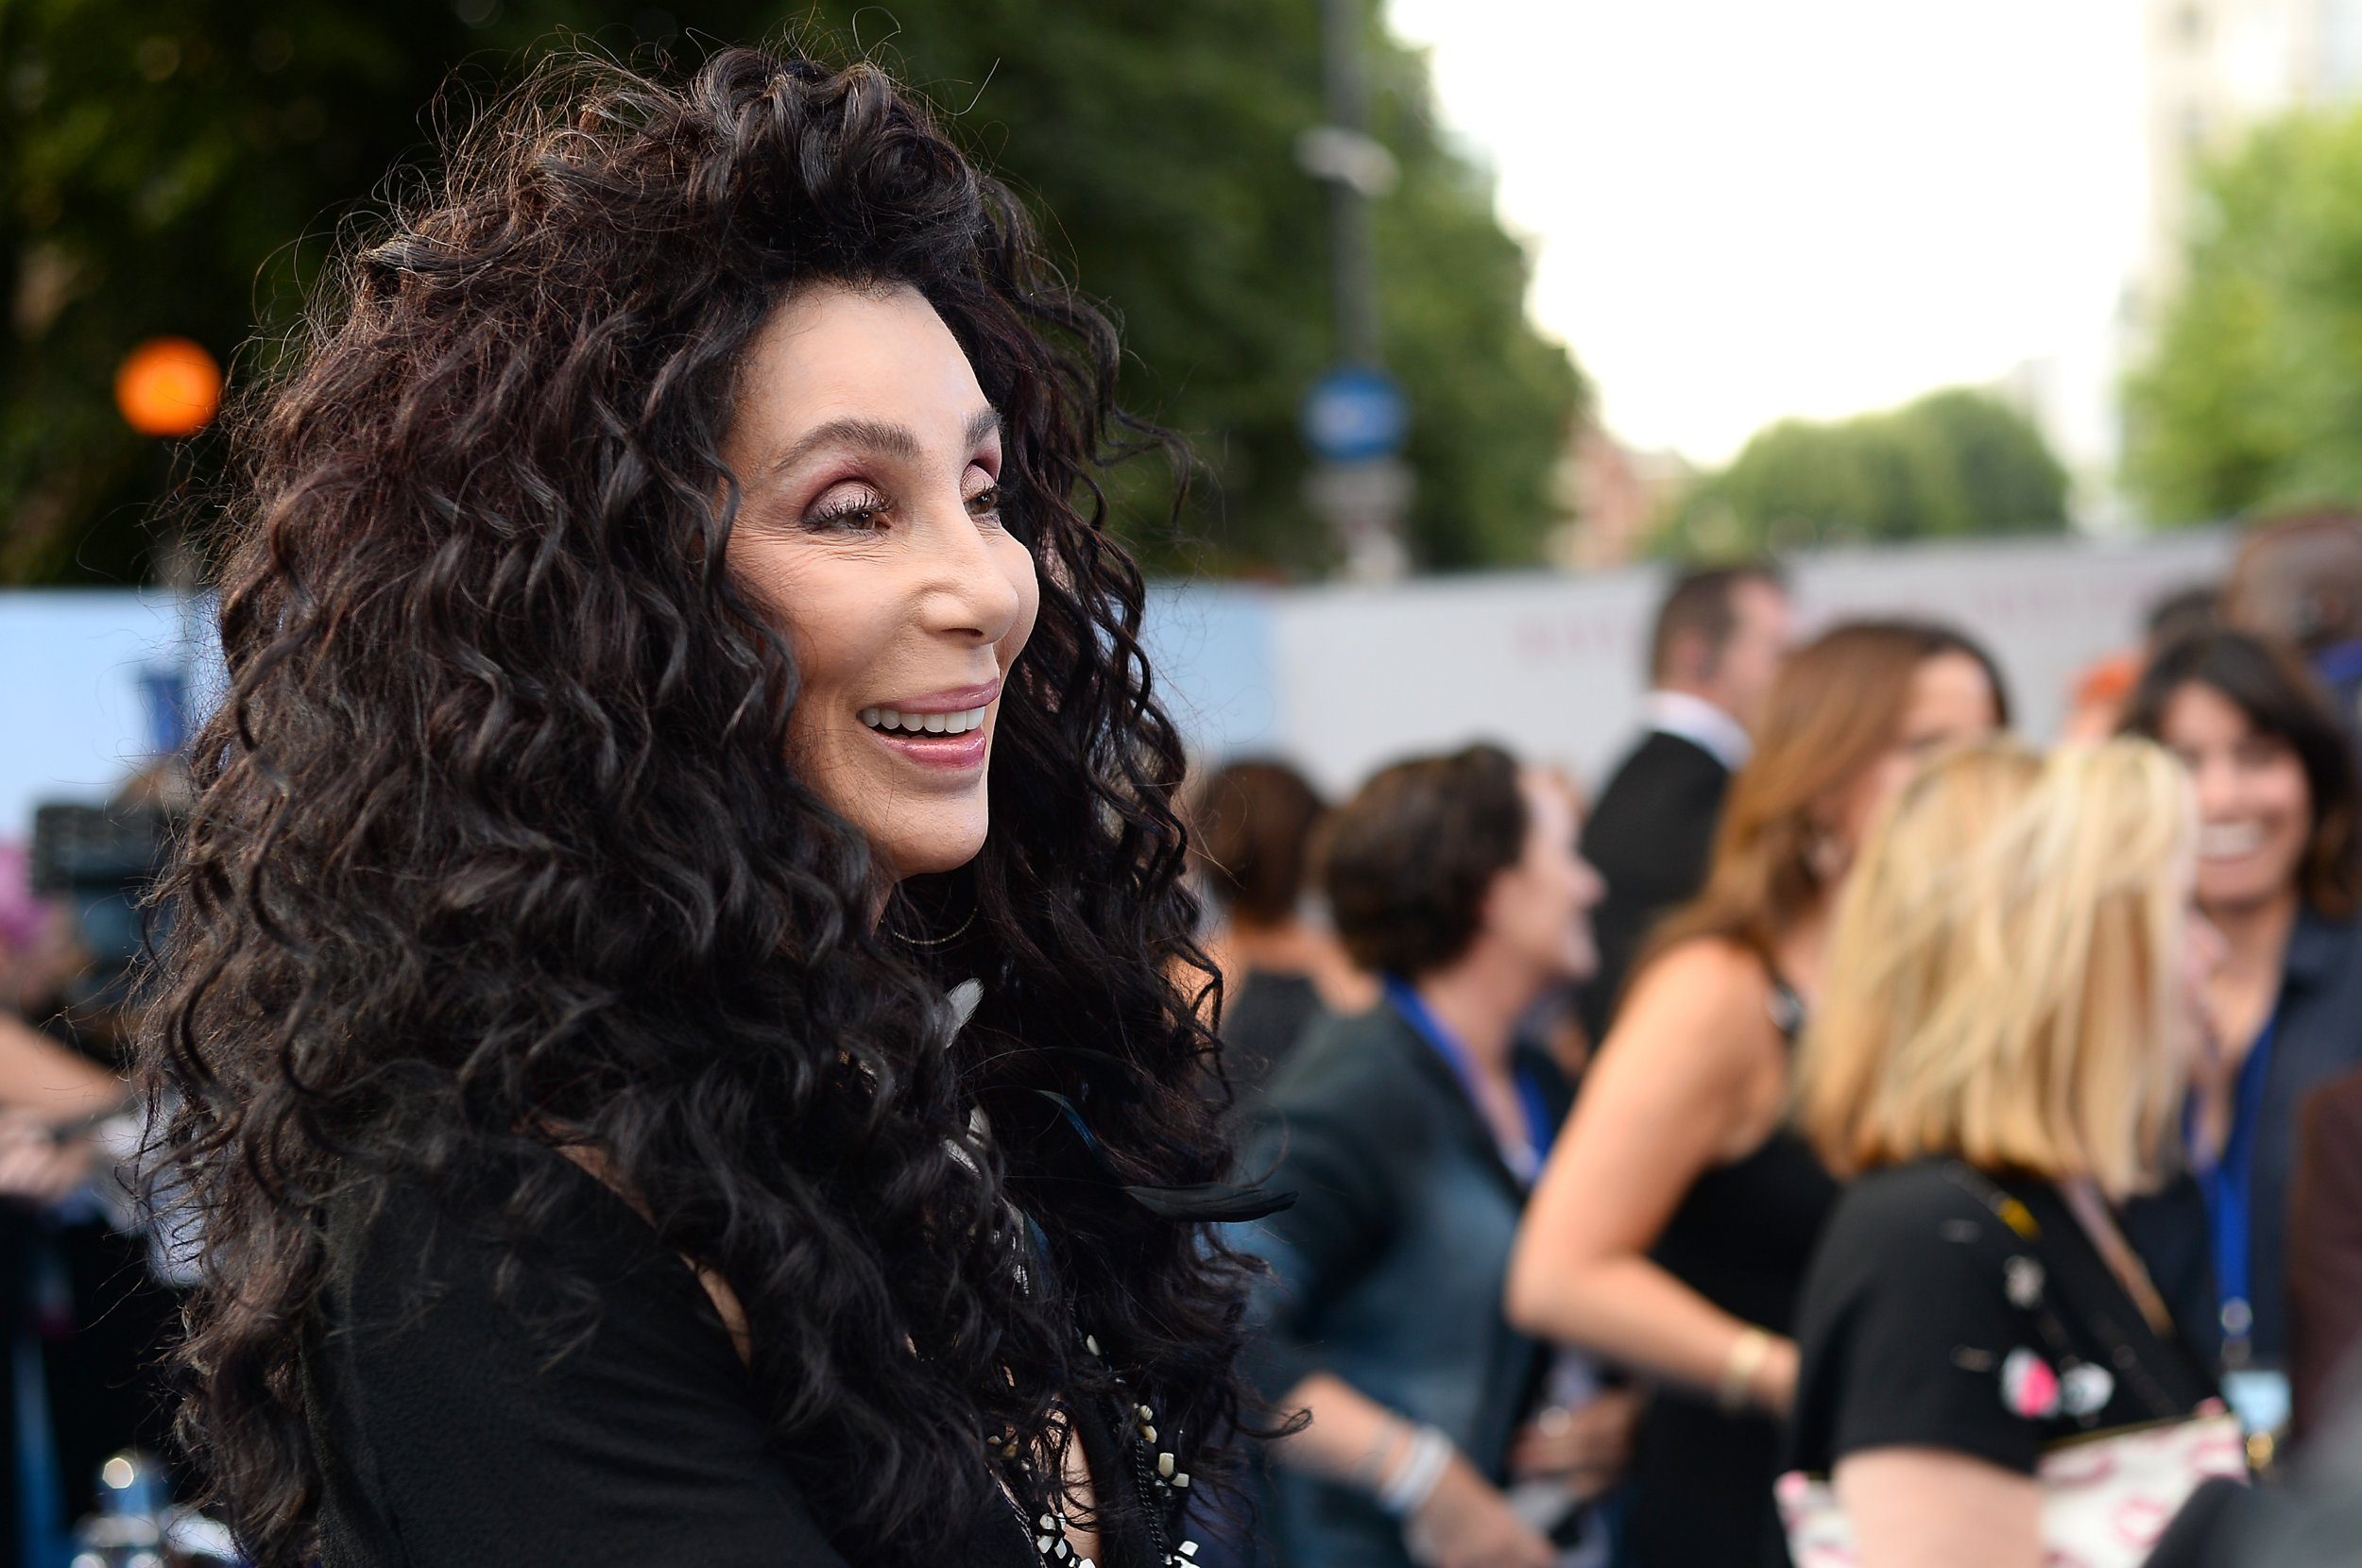 Man arrested on drug charges at Cher's Malibu home